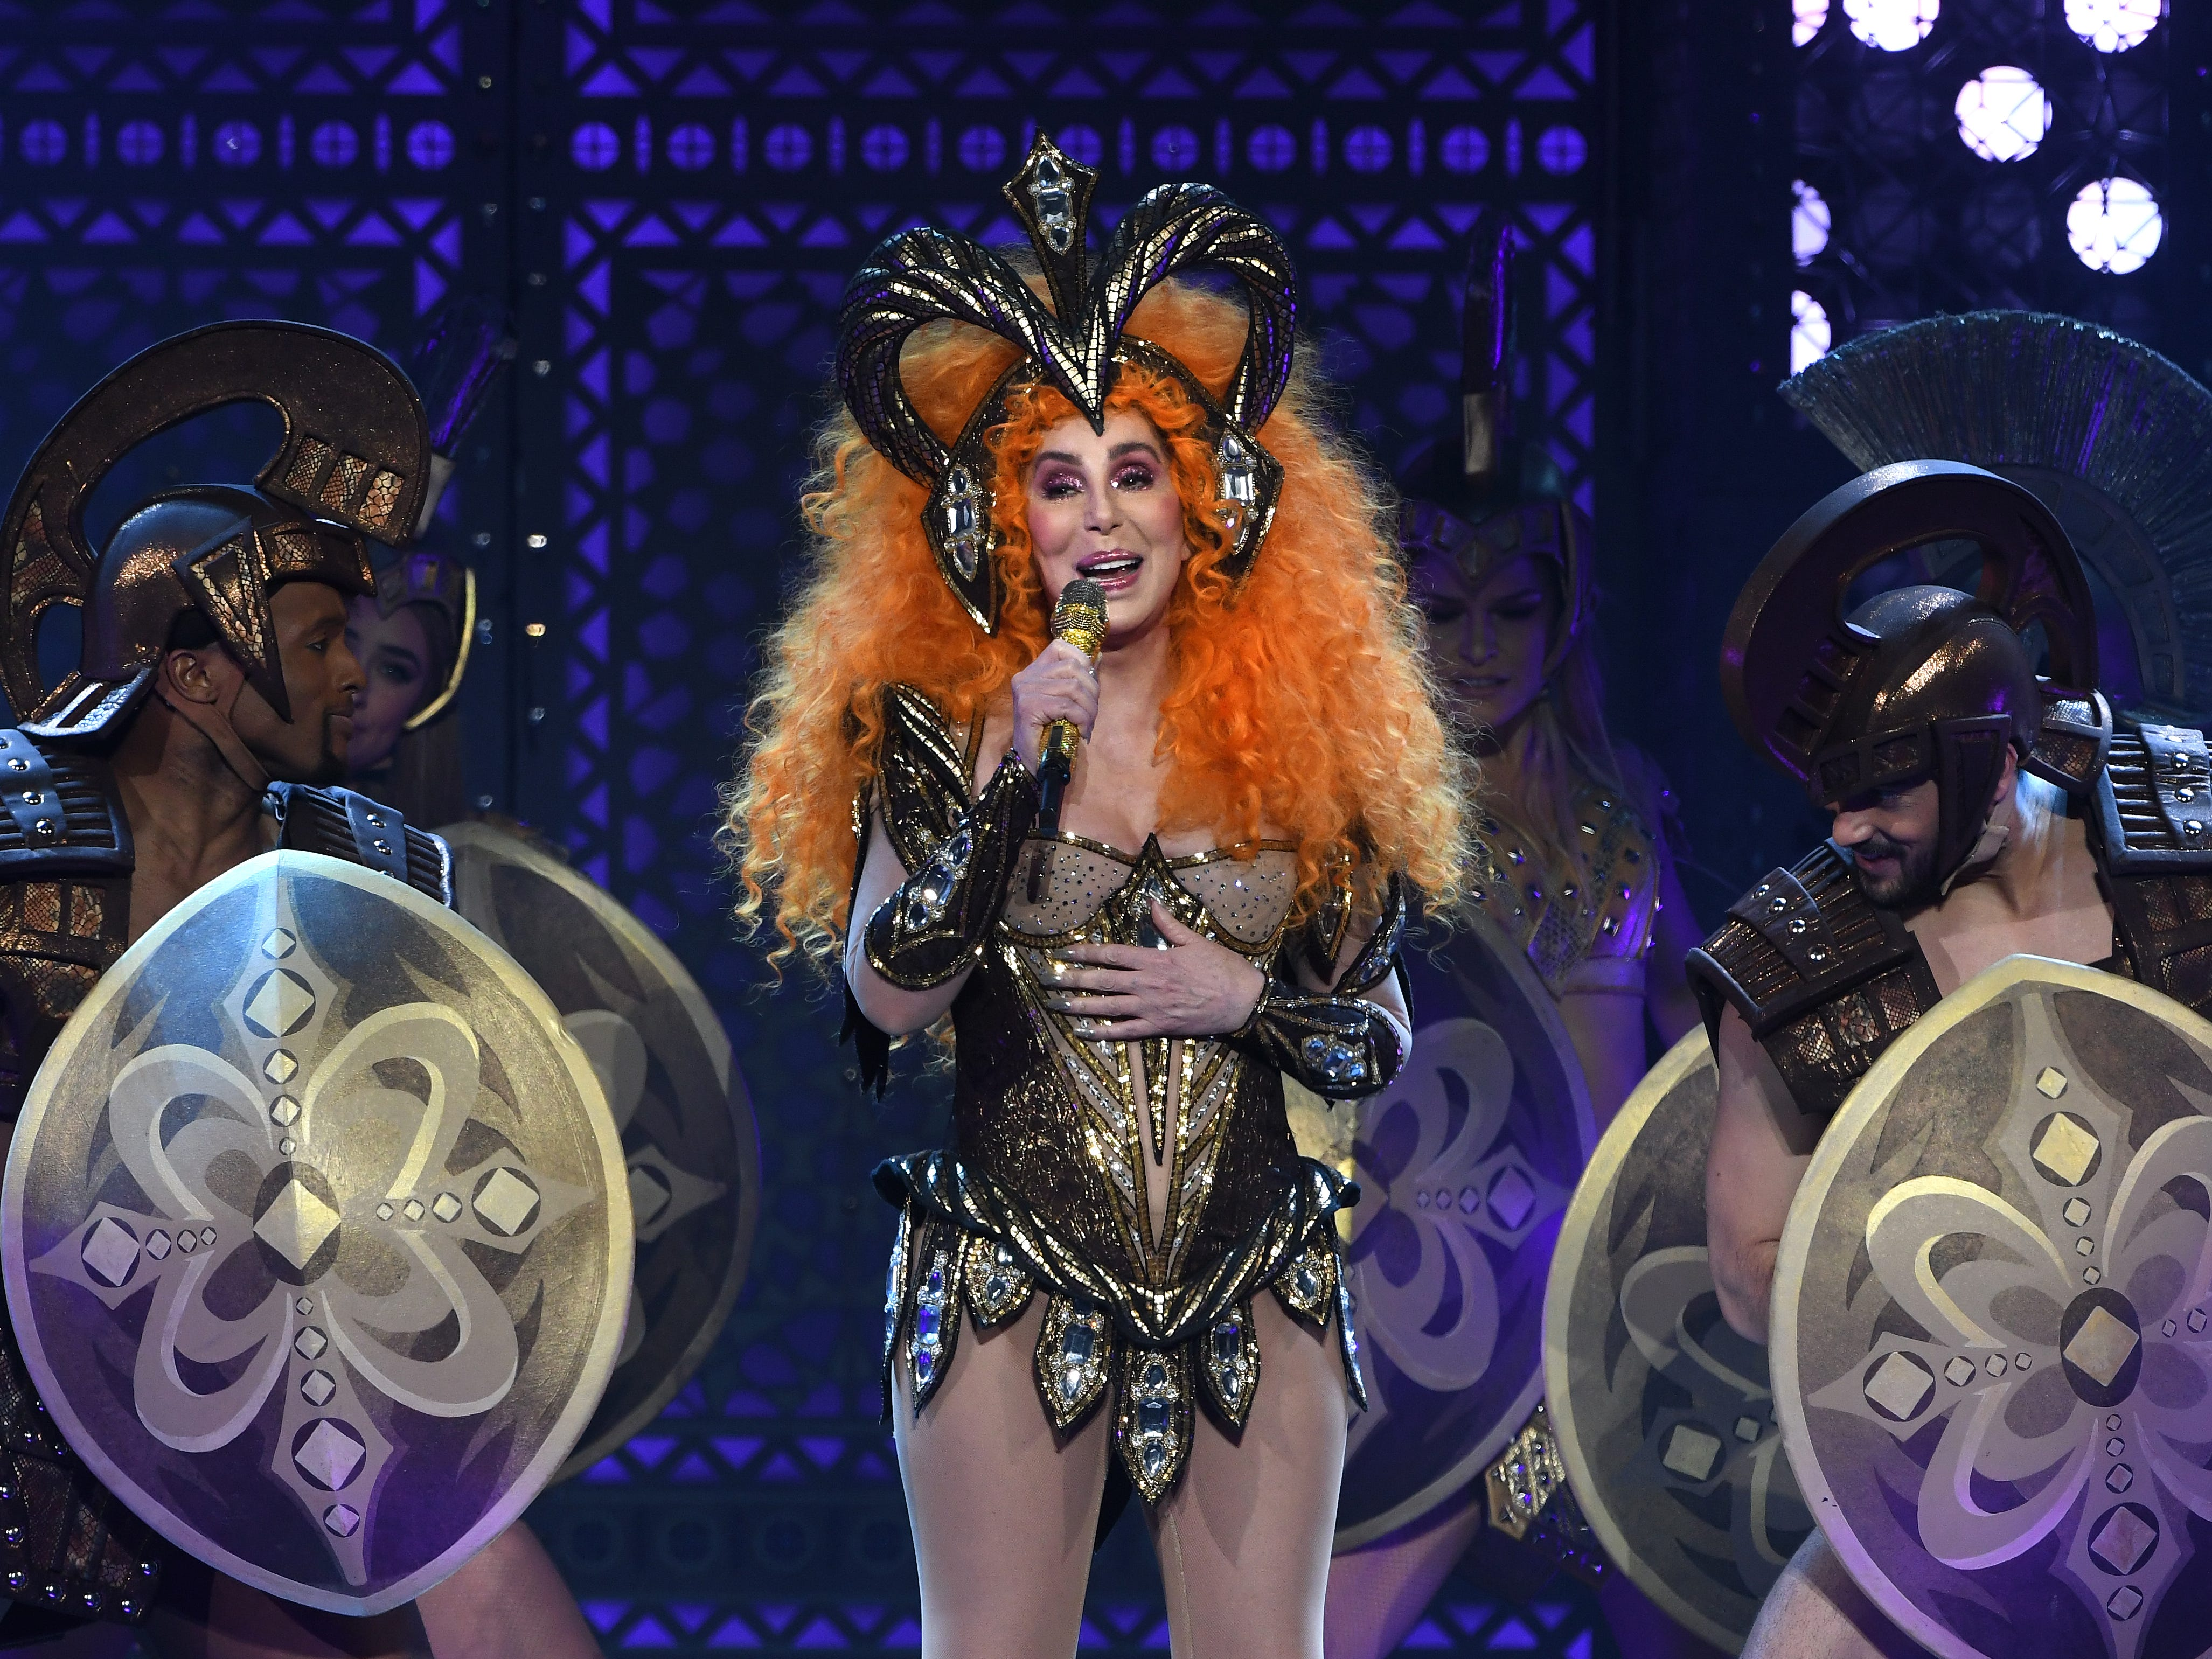 Cher turns back time to the delight of the audience, performing at Little Caesars Arena in Detroit.